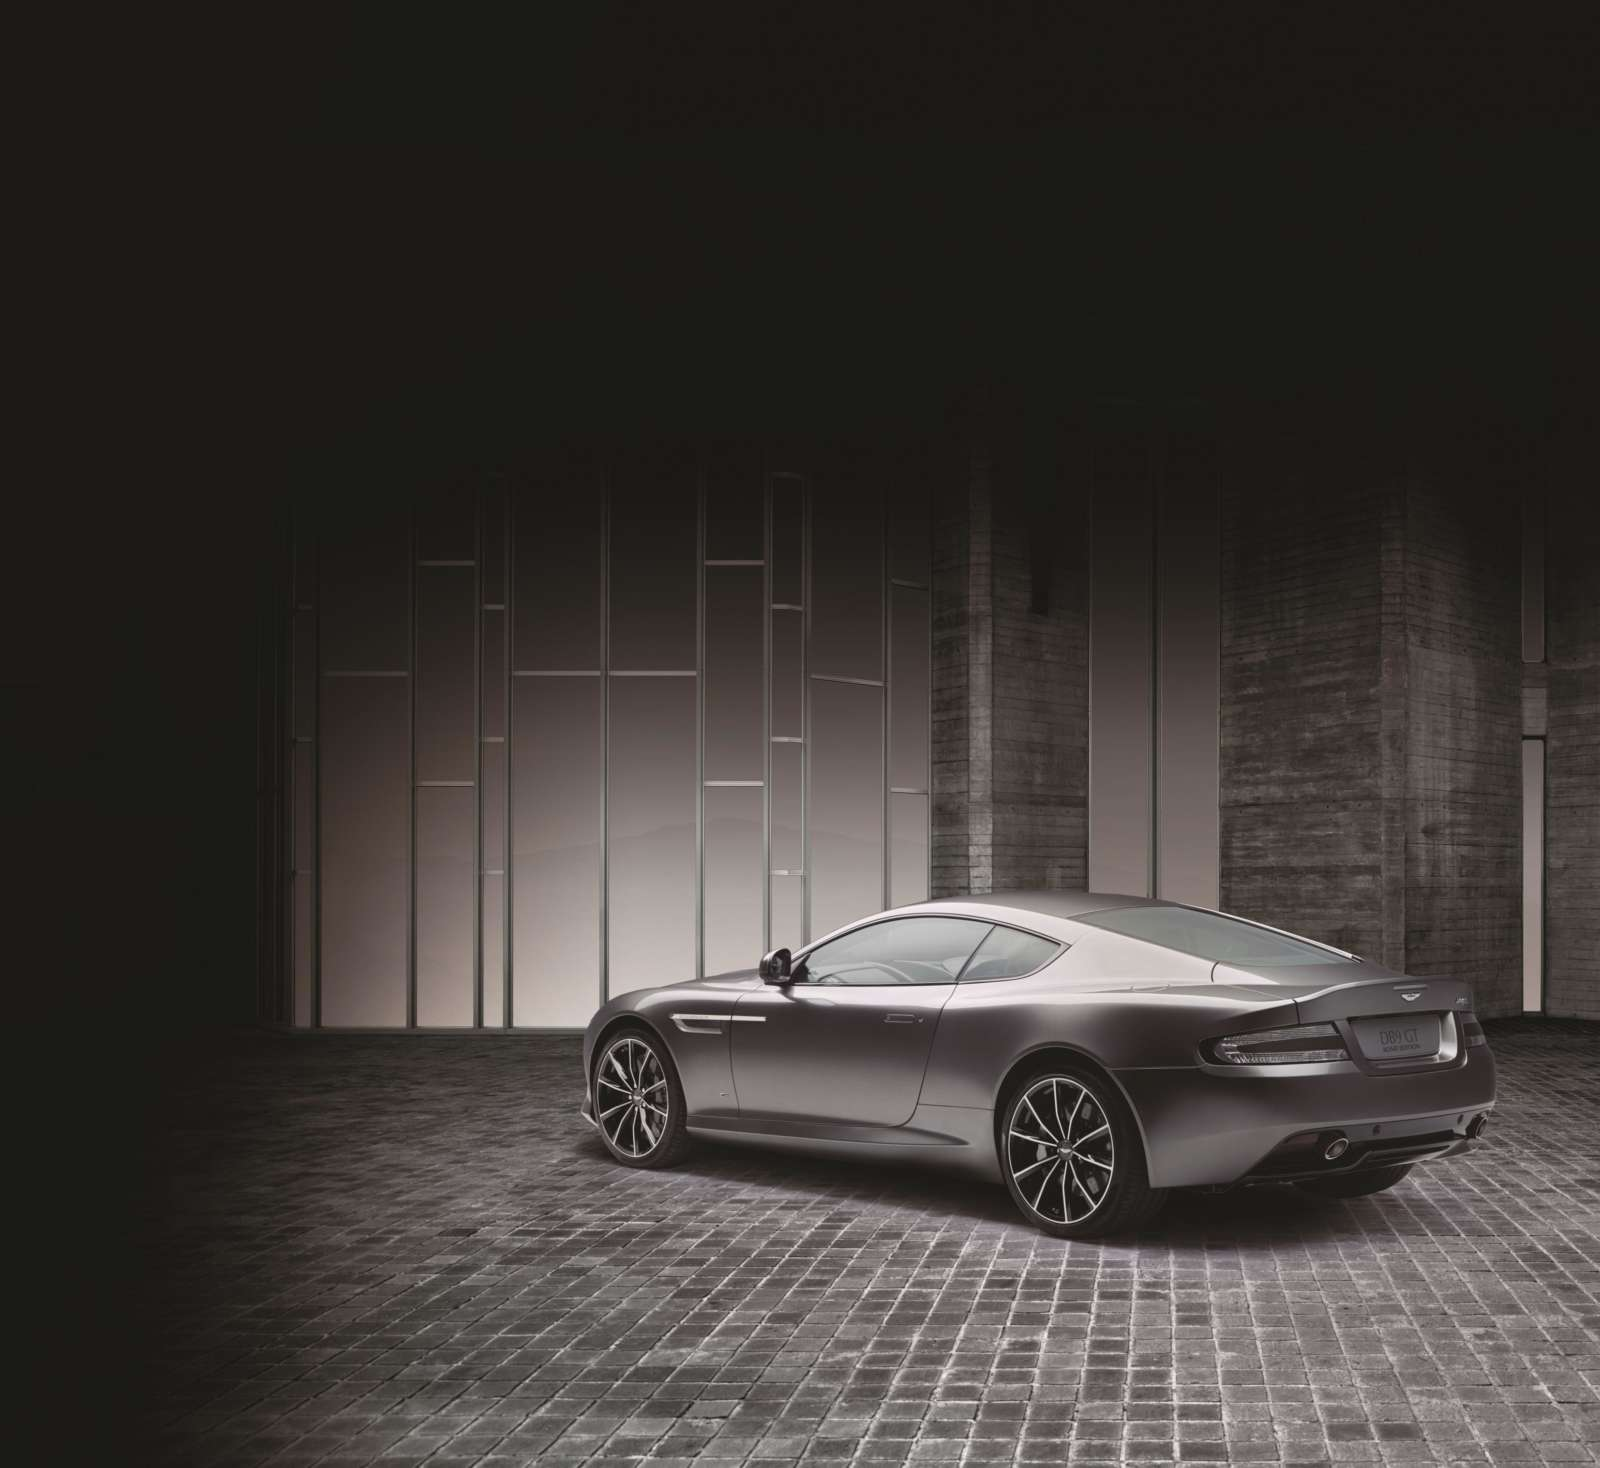 Celebrating Over 50 Years Of Aston Martin And James Bond